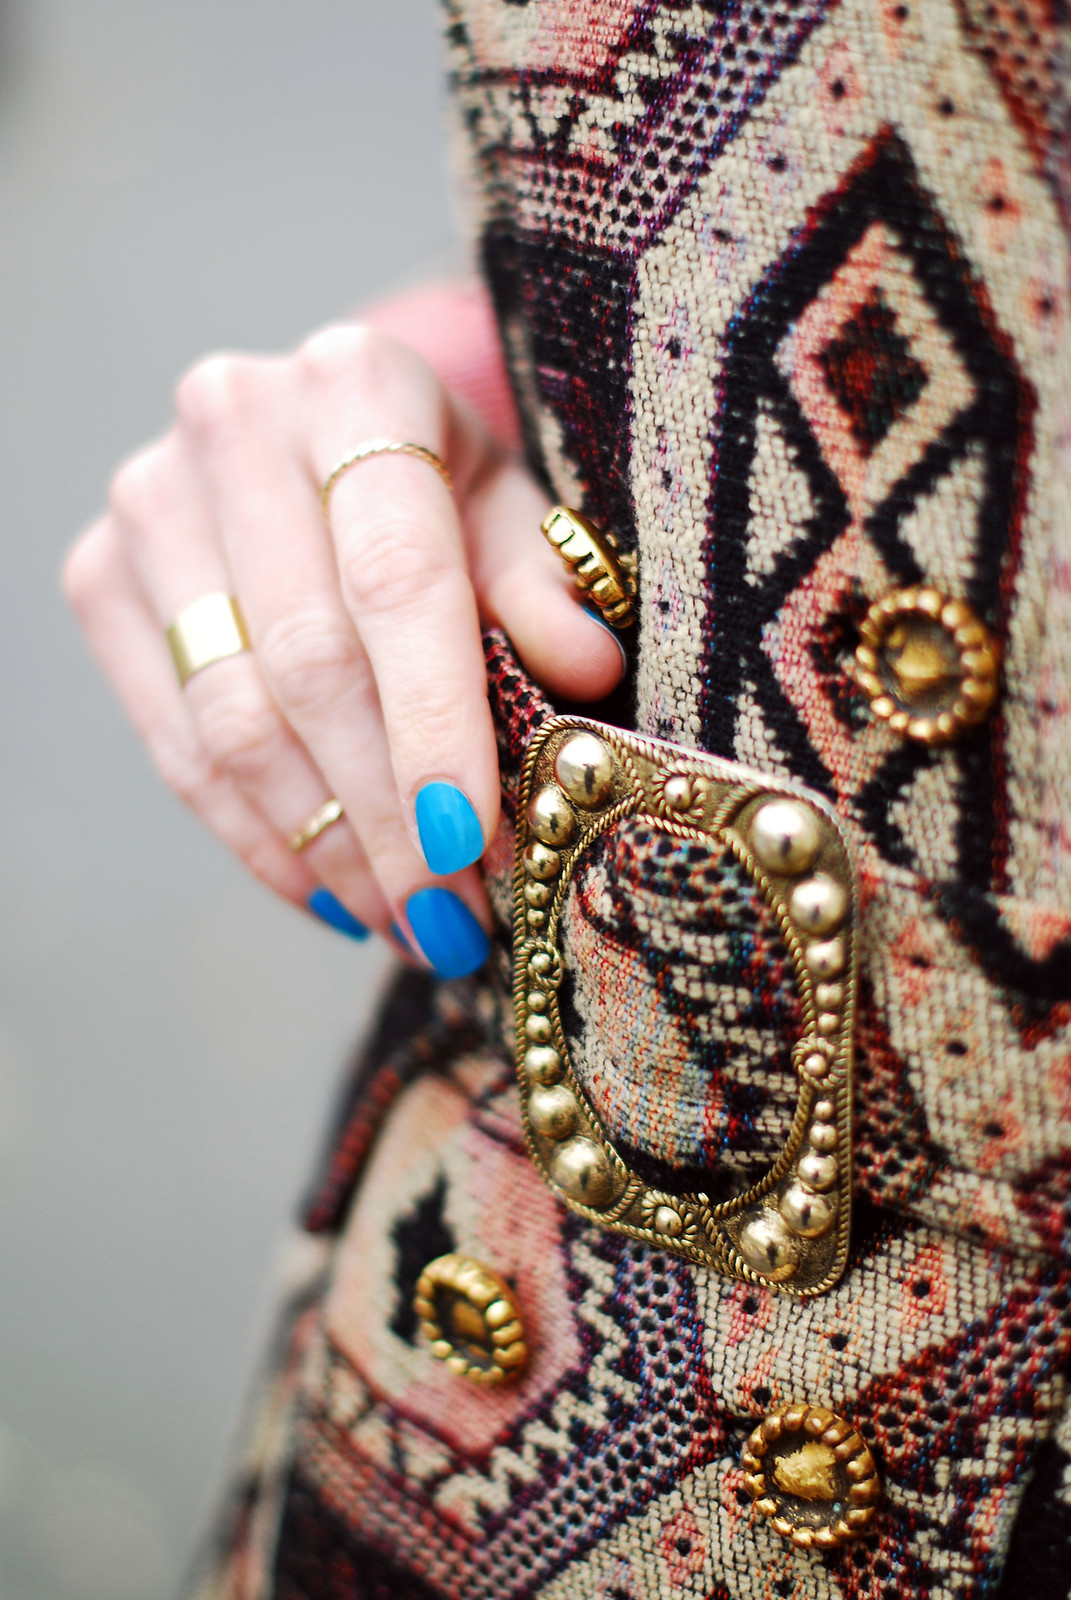 Vintage tapestry coat, blue nails, gold jewellery | Not Dressed As Lamb